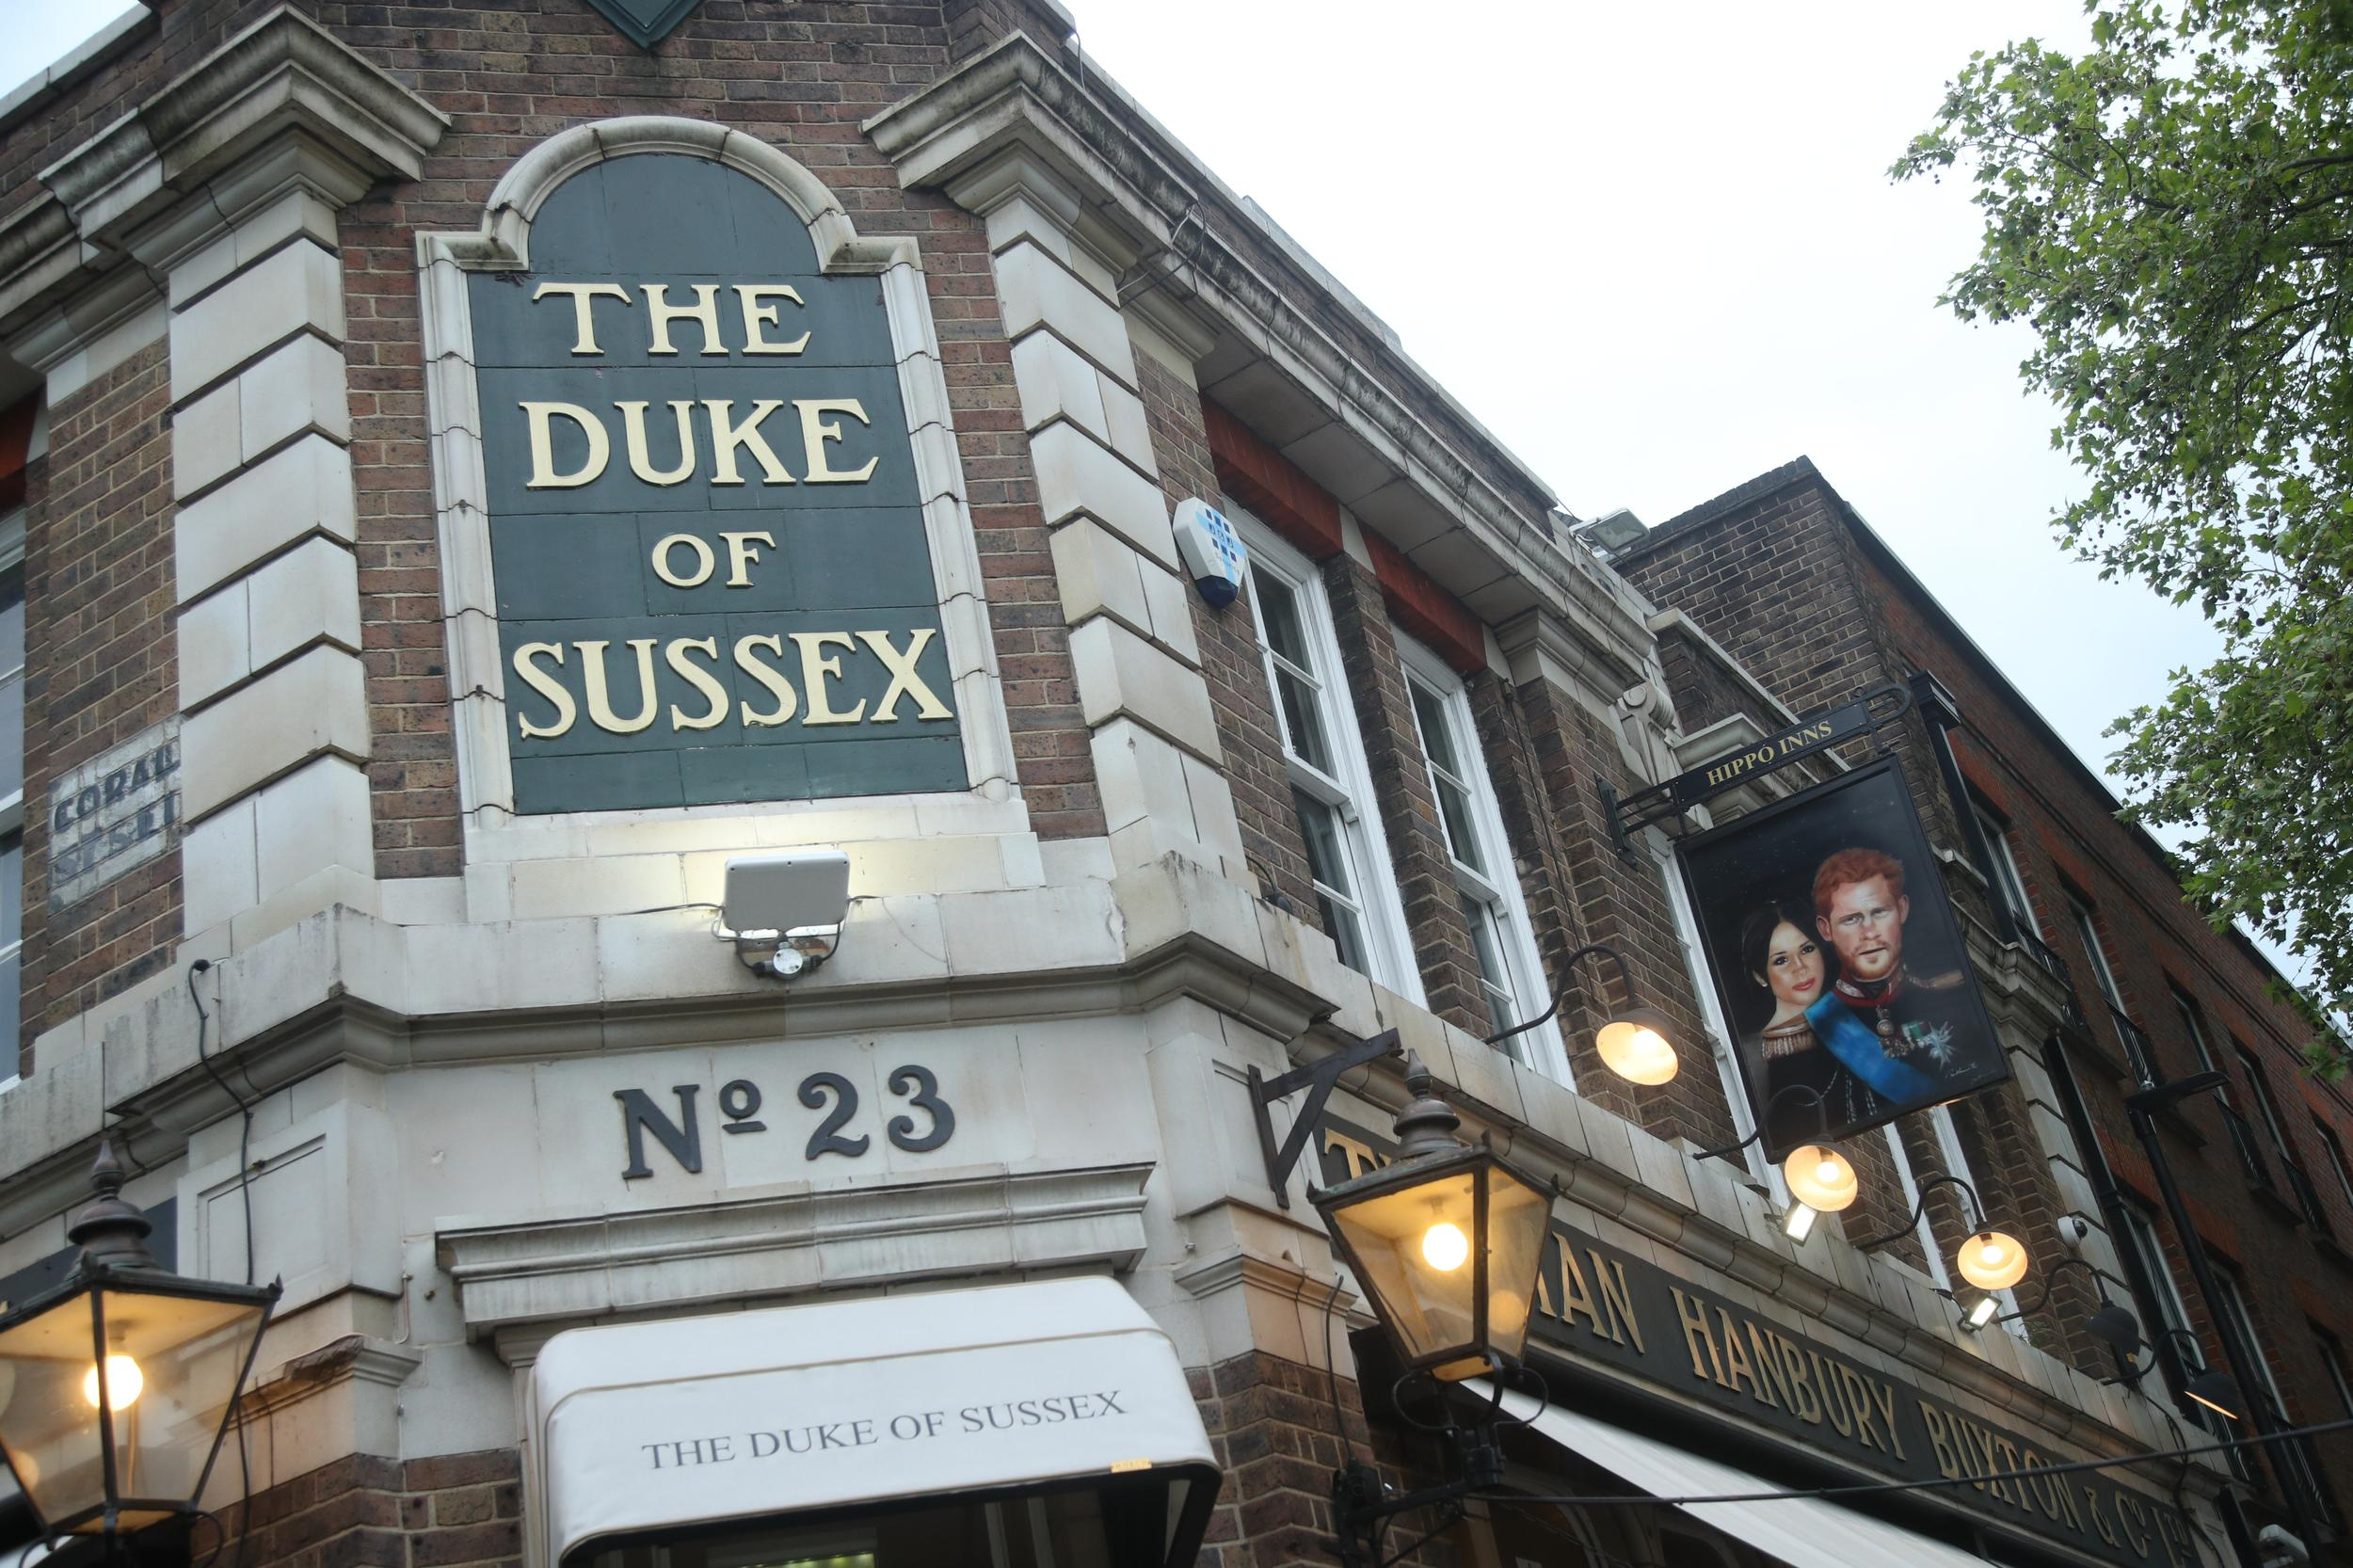 The Duke of Sussex public house in Waterloo, London on the day the Duke and Duchess of Sussex had a baby boy.